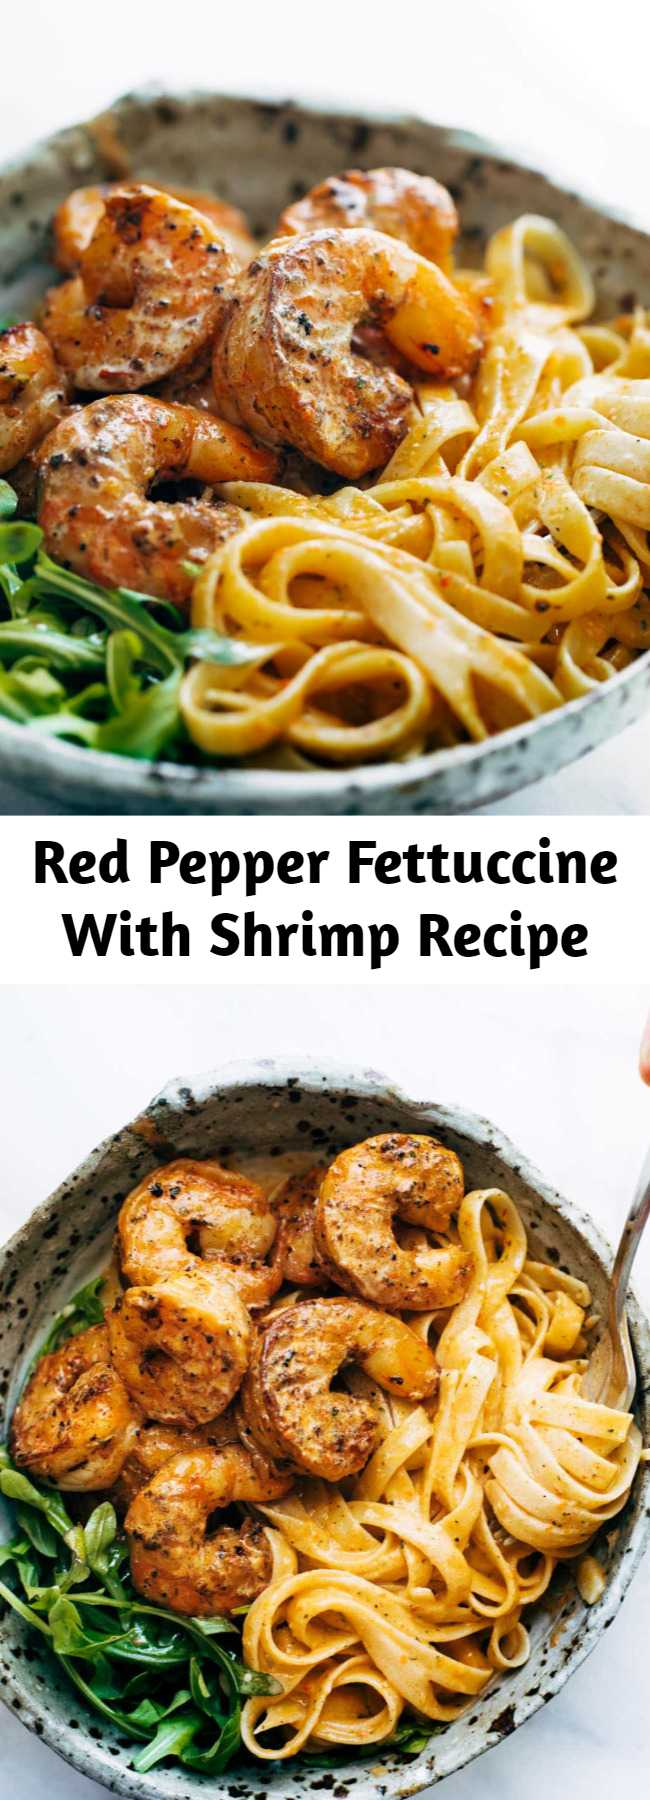 Red Pepper Fettuccine With Shrimp Recipe - Red Pepper Fettuccine with Shrimp! It's got quick, pan-fried shrimp, creamy noodles, and red pepper / garlic / butter / lemon-ish sauce vibes. Perfect quick and easy dinner!